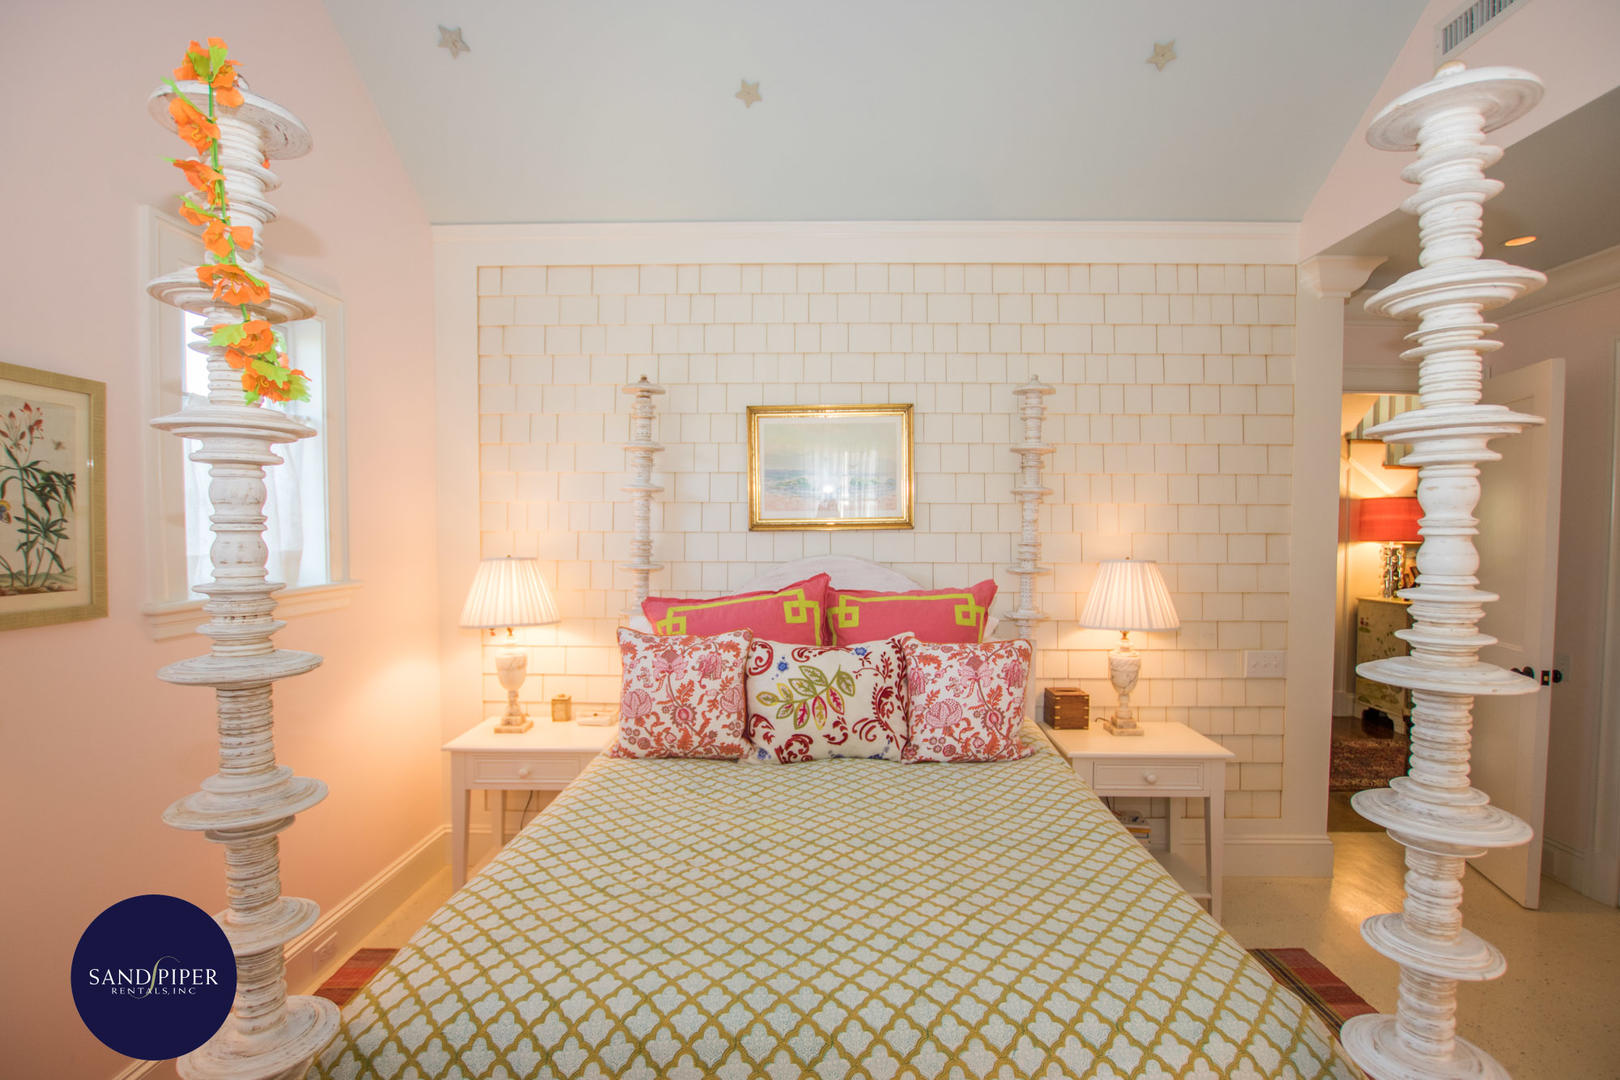 Bedroom 2 with Queen Bed and Ensuite Bath with Tub Shower Combination, Second Floor